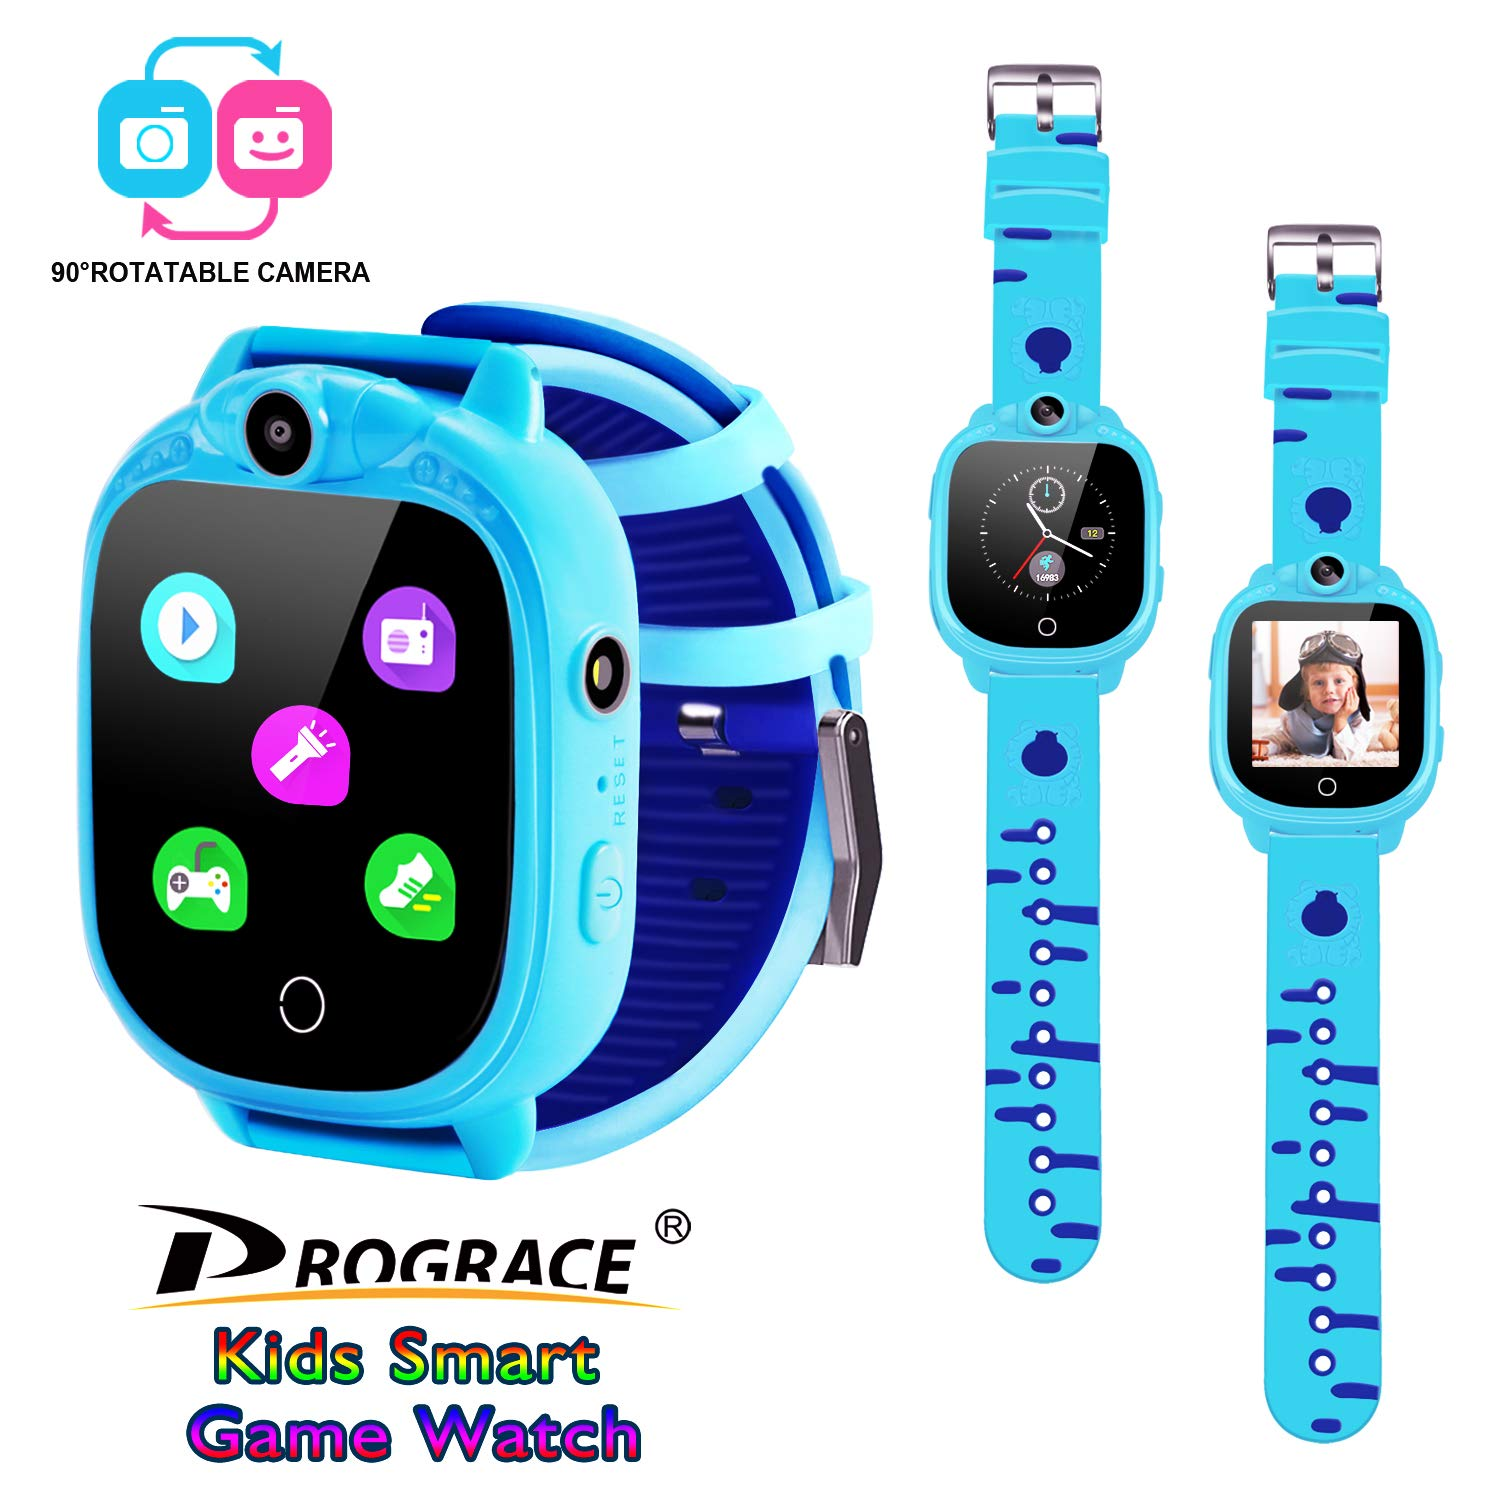 Fun watch for kids.